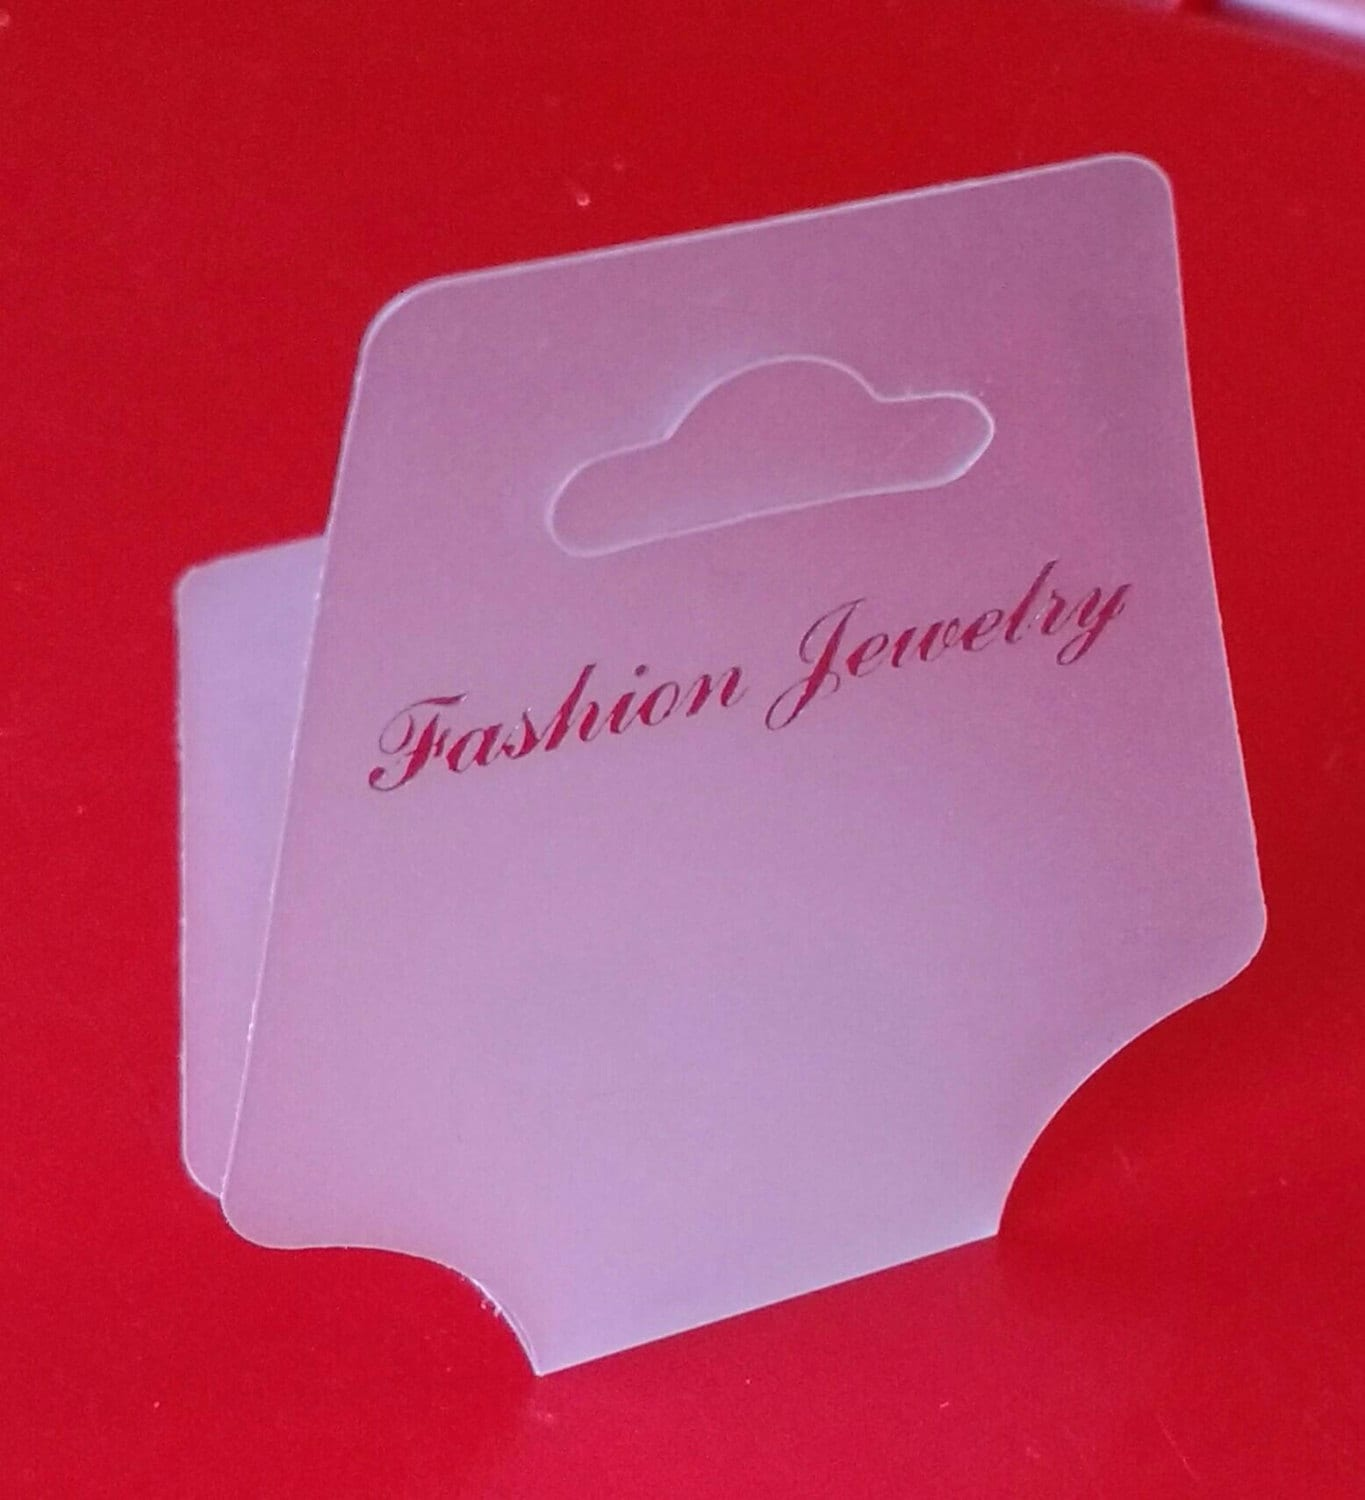 12x Display Cards Price Tags Necklace White Plastic Fold Over Jewellery Label 3 5x7 5cm Bracelet Making Diy Jewelry Shop Supplies Uk